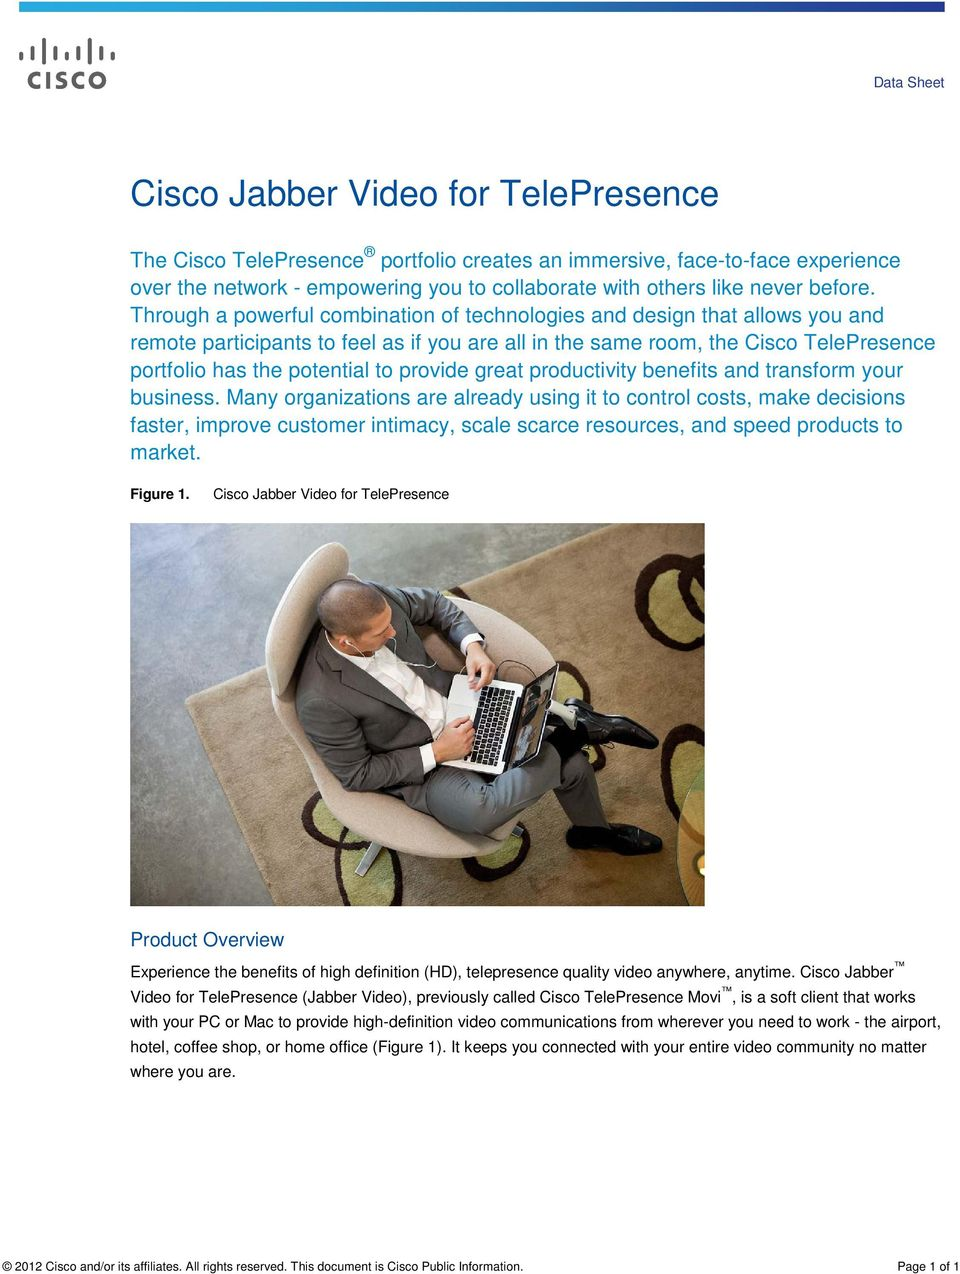 Through a powerful combination of technologies and design that allows you and remote participants to feel as if you are all in the same room, the Cisco TelePresence portfolio has the potential to